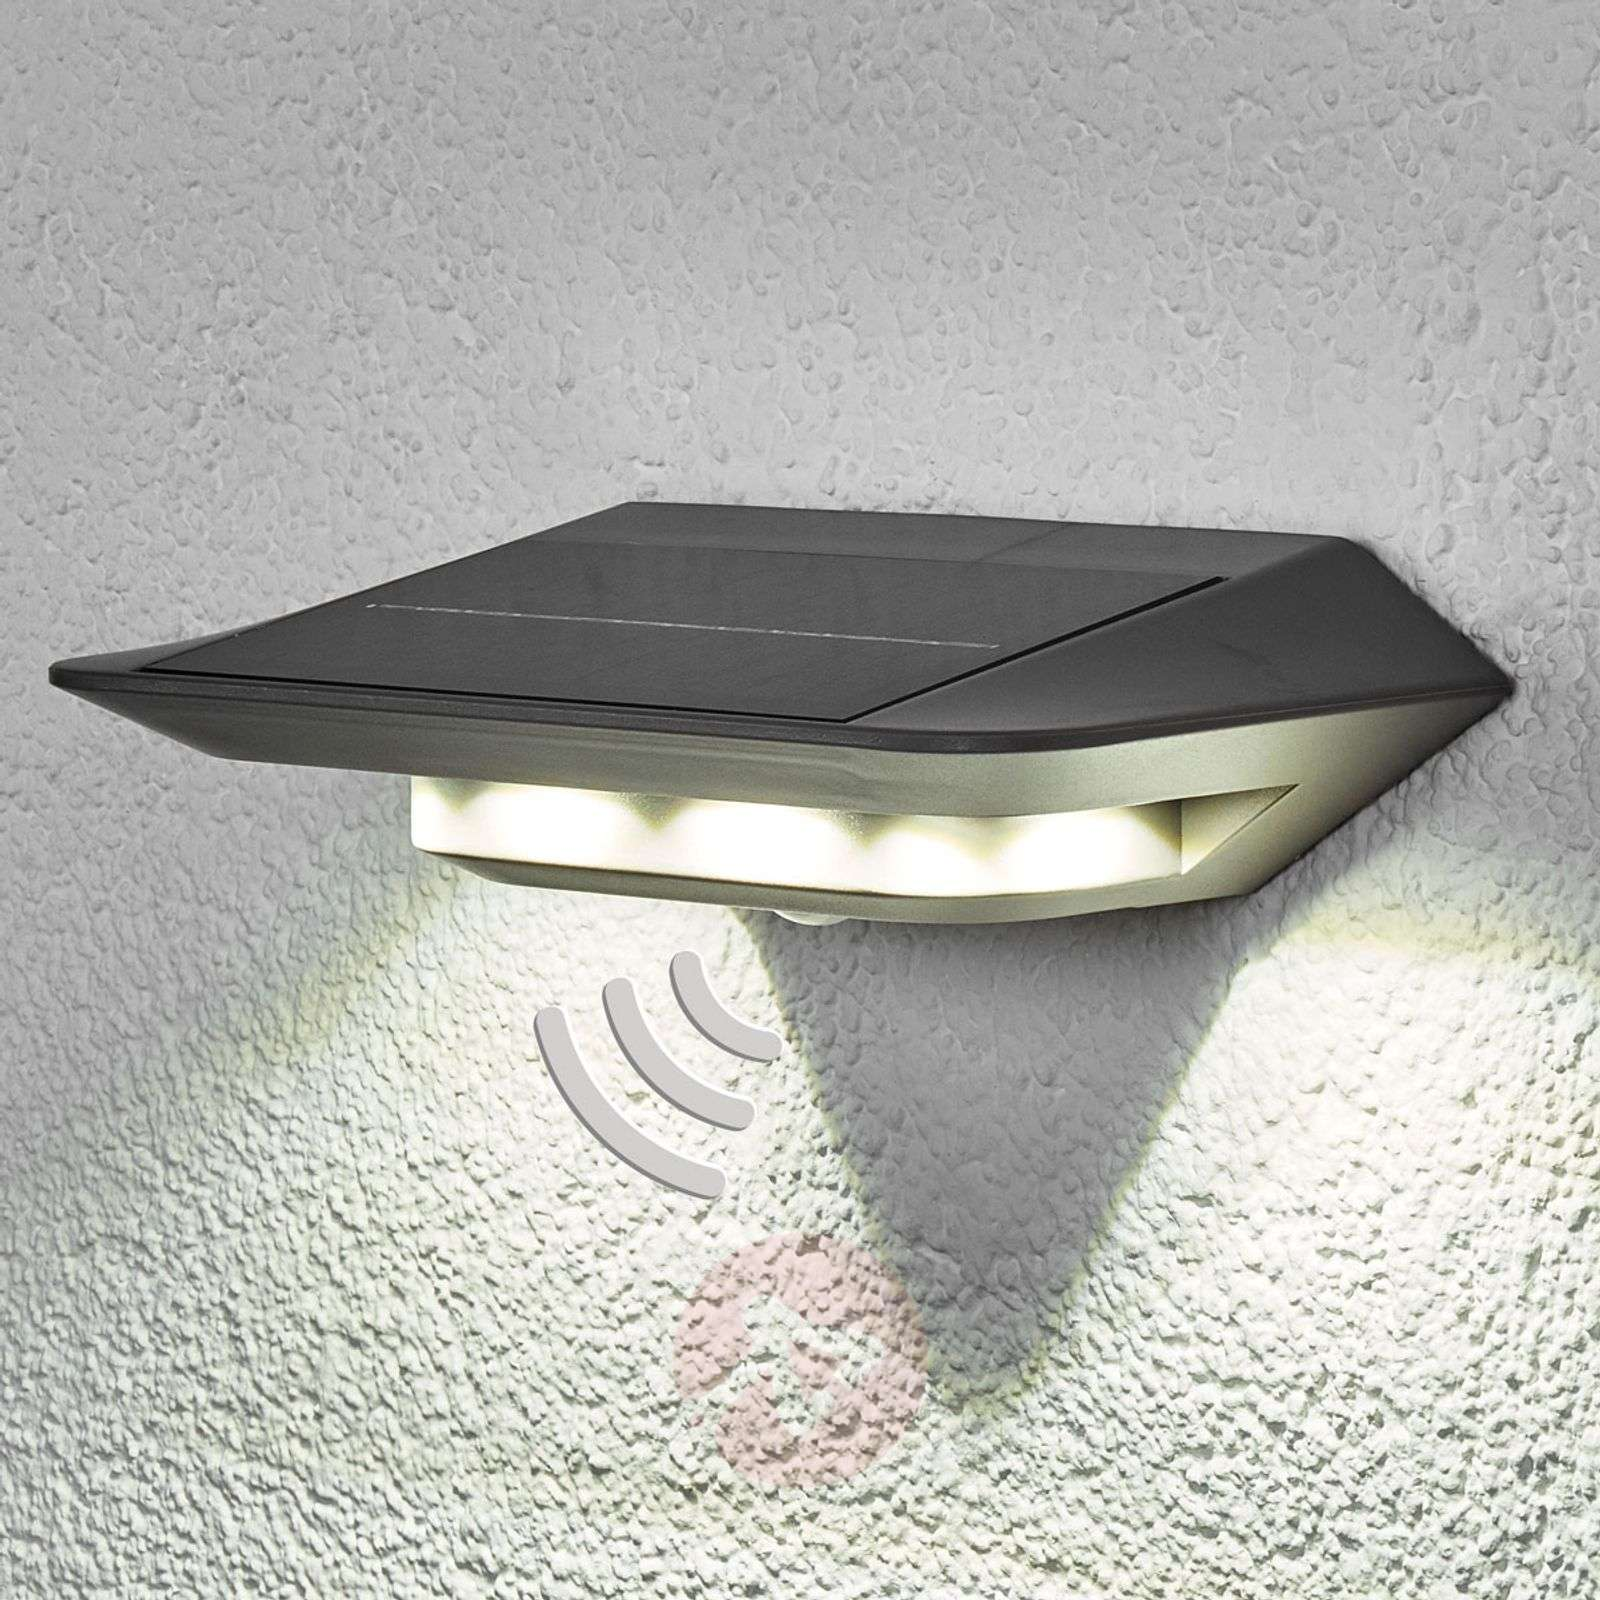 Acquista applique solare led ghost con sensore di movimento